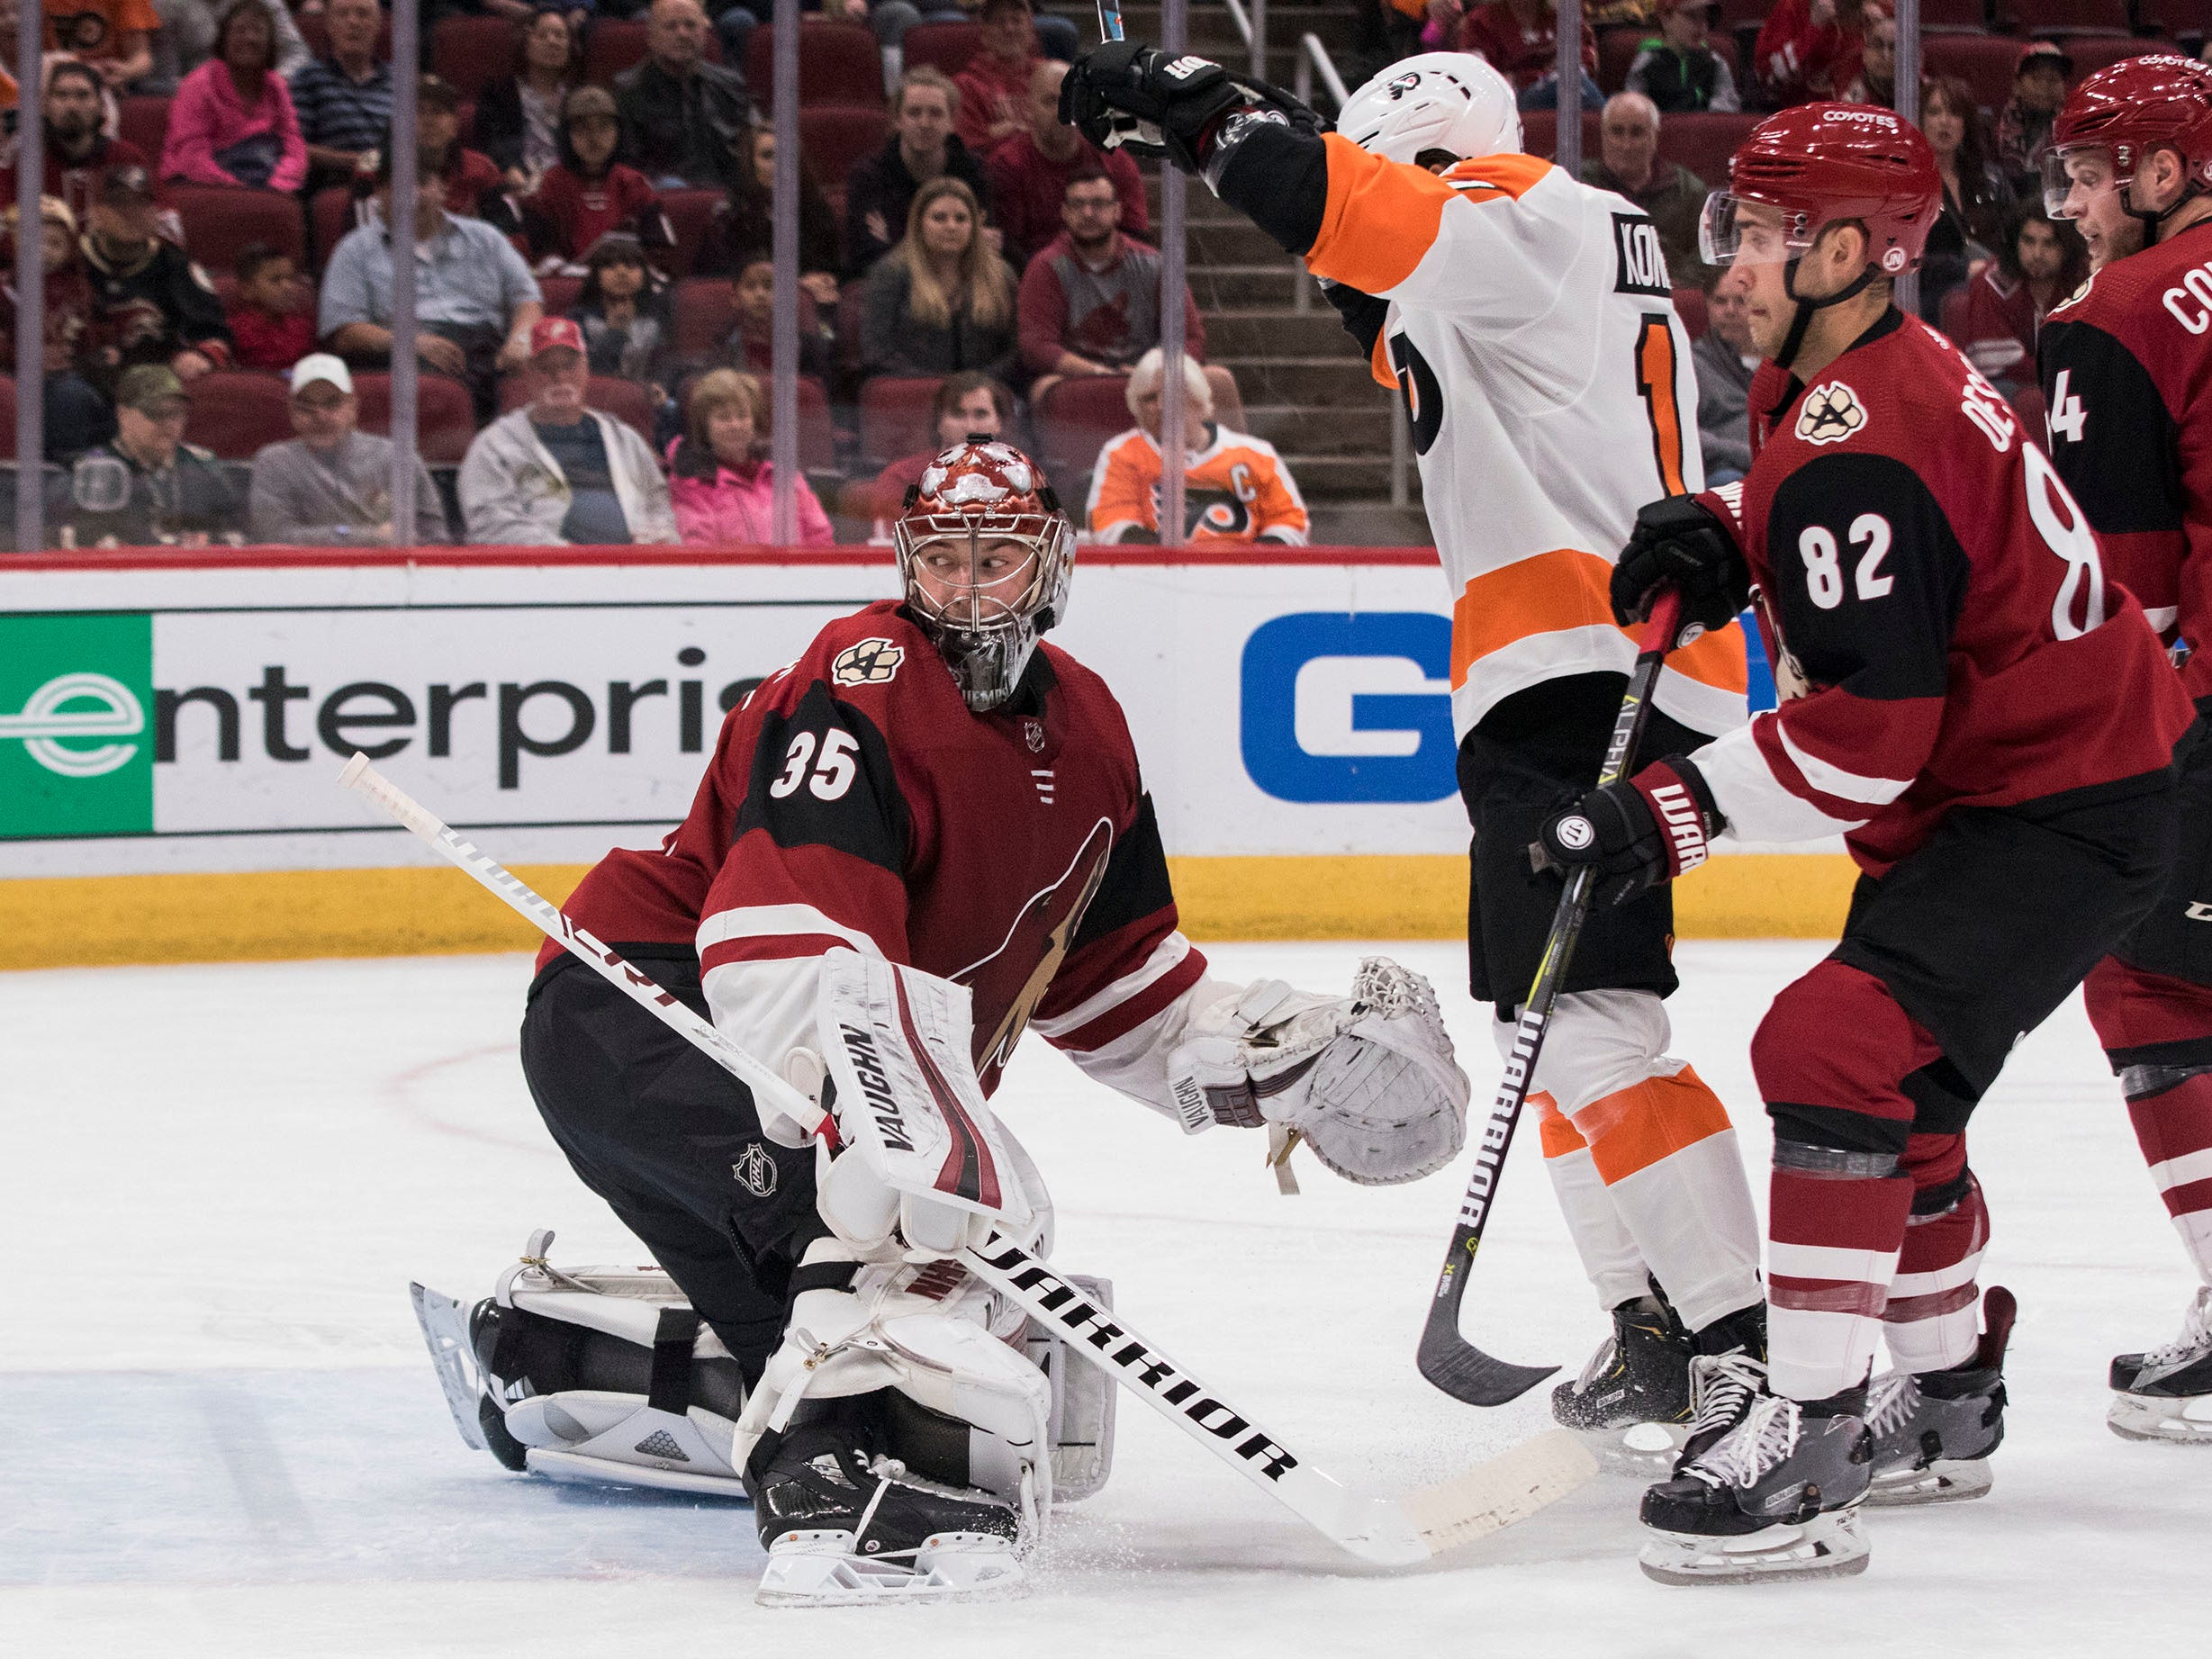 Philadelphia Flyers' Travis Konecny, center, celebrates his goal as the Arizona Coyotes goalie Darcy Kuemper, left, and Jordan Oesterle, right, looks back towards the net during the first period of an NHL hockey game Monday, Nov. 5, 2018, in Glendale, Ariz. (AP Photo/Darryl Webb)